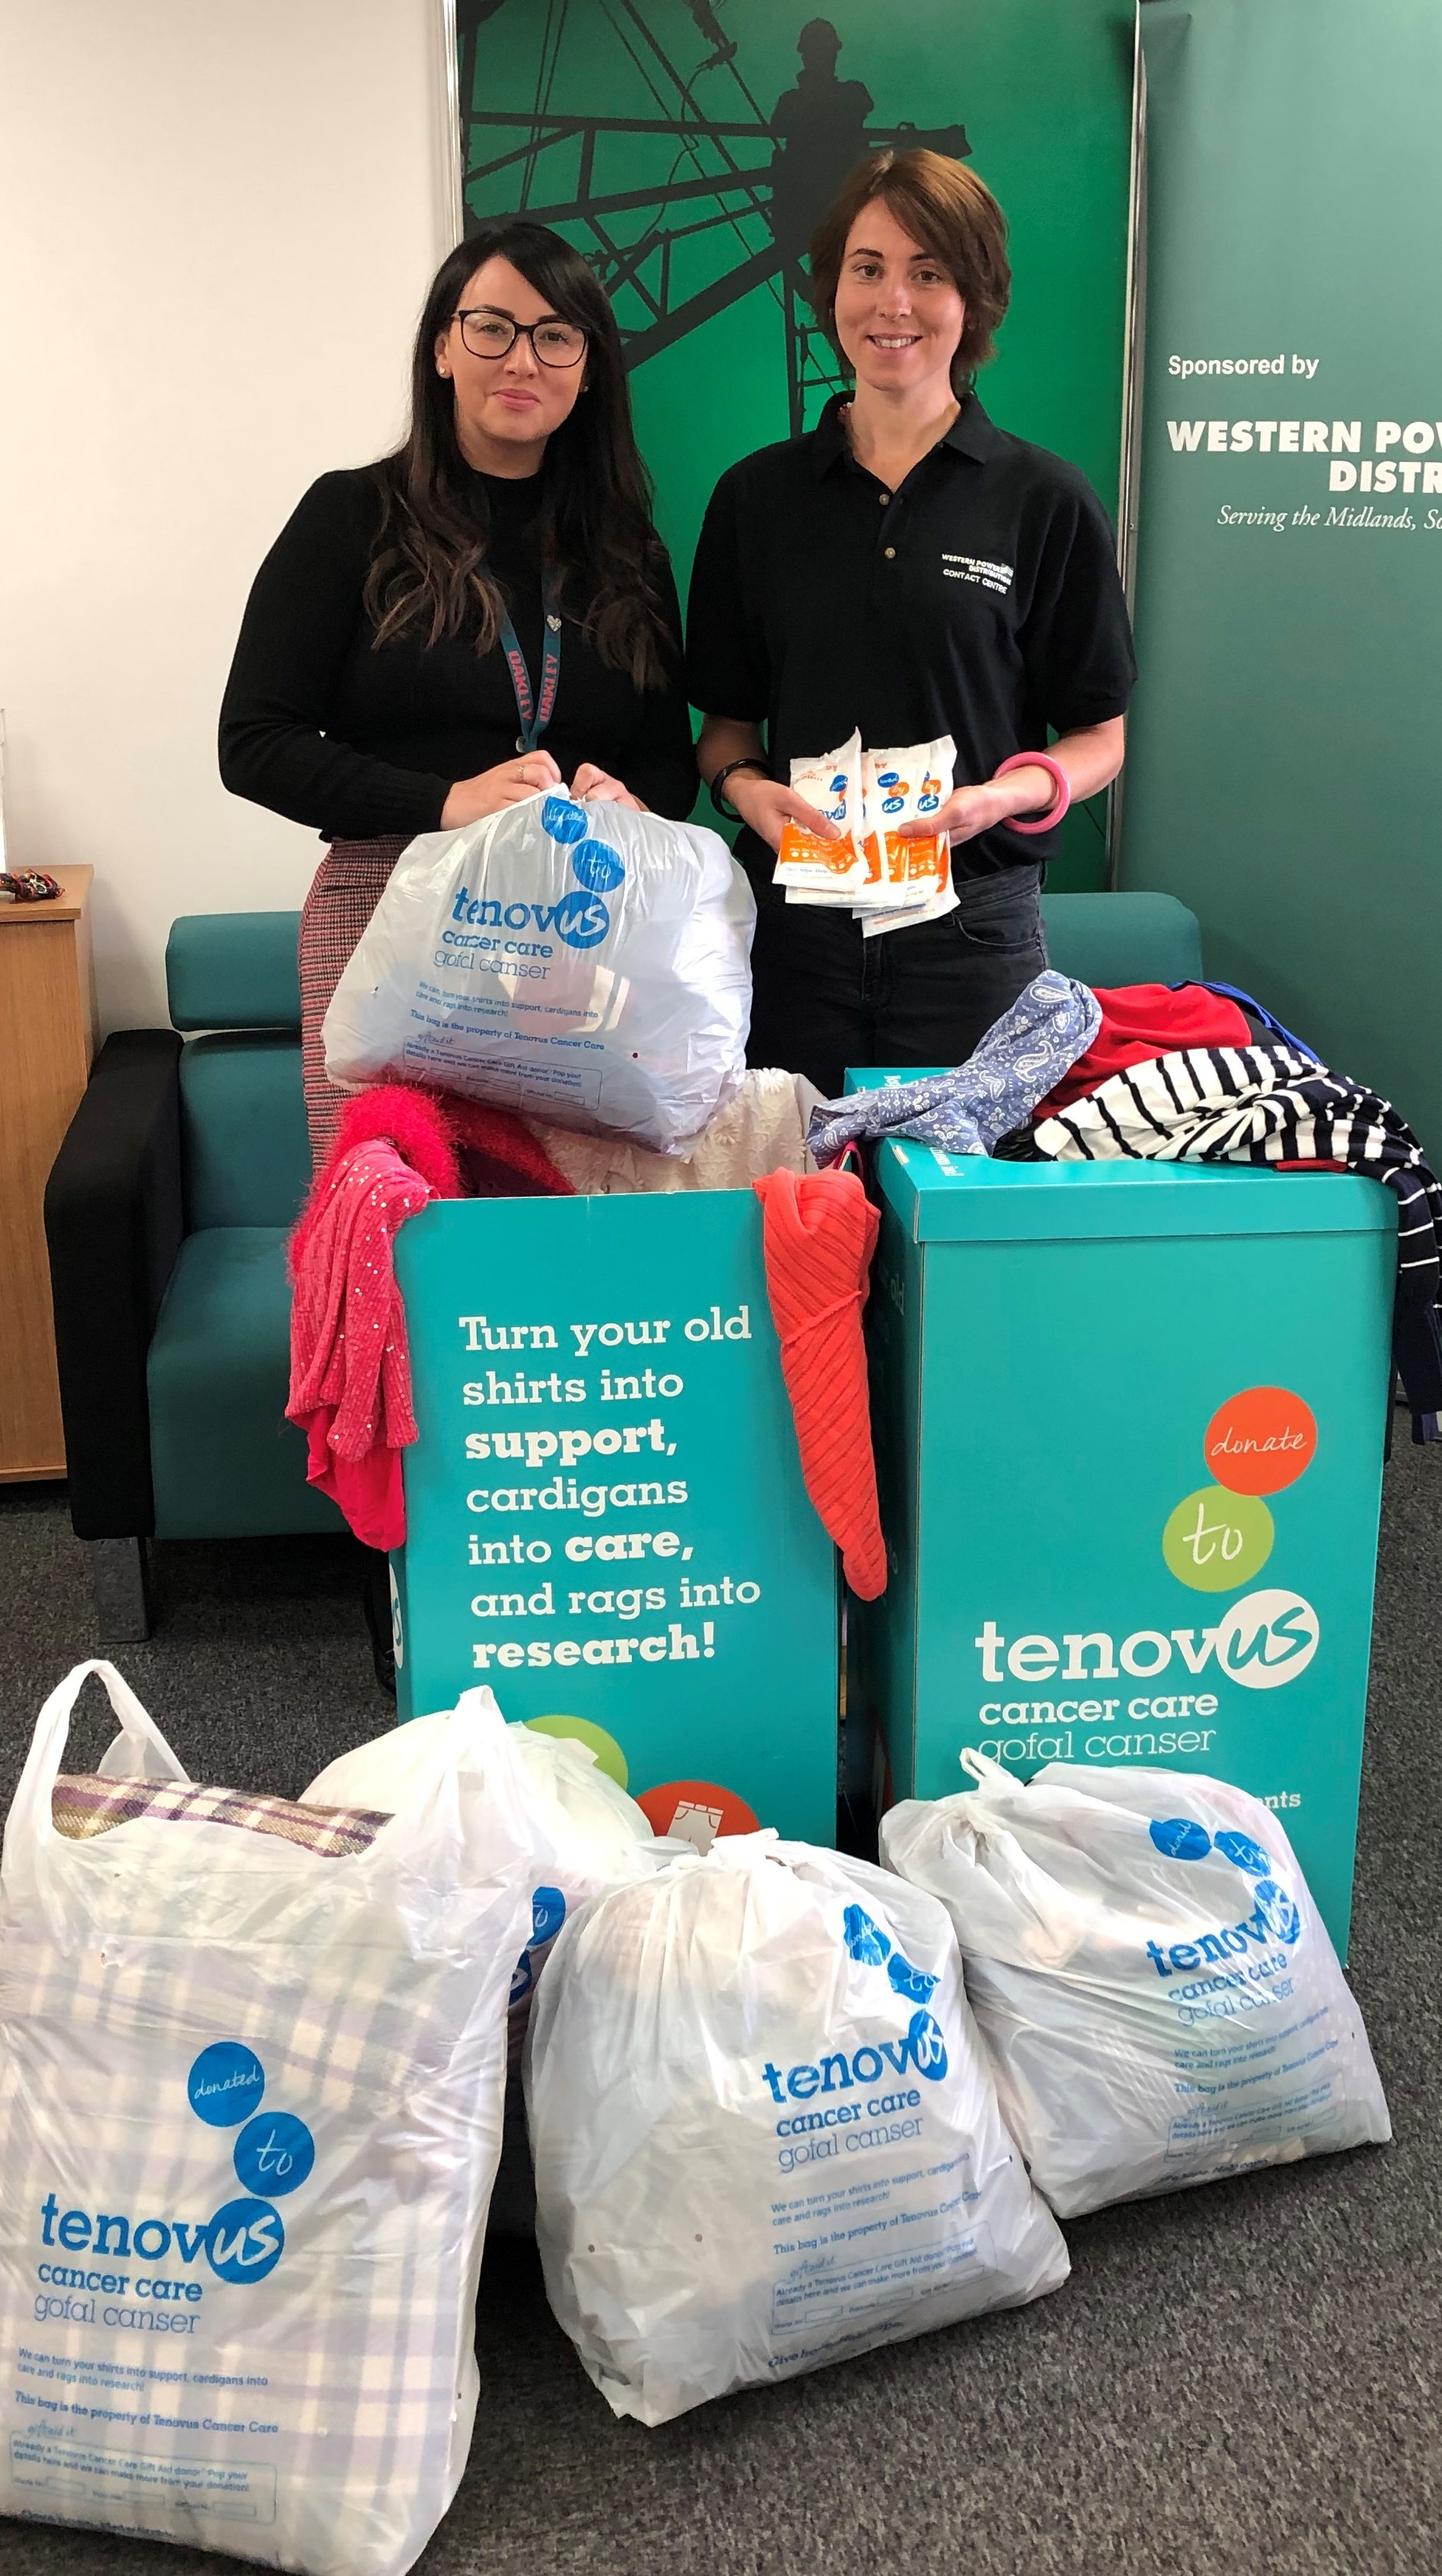 WPD Contact Centre Advisors Lisa Gibson and Fiona Morgan helping to sort out clothing and unwanted items donated by colleagues at WPD's offices